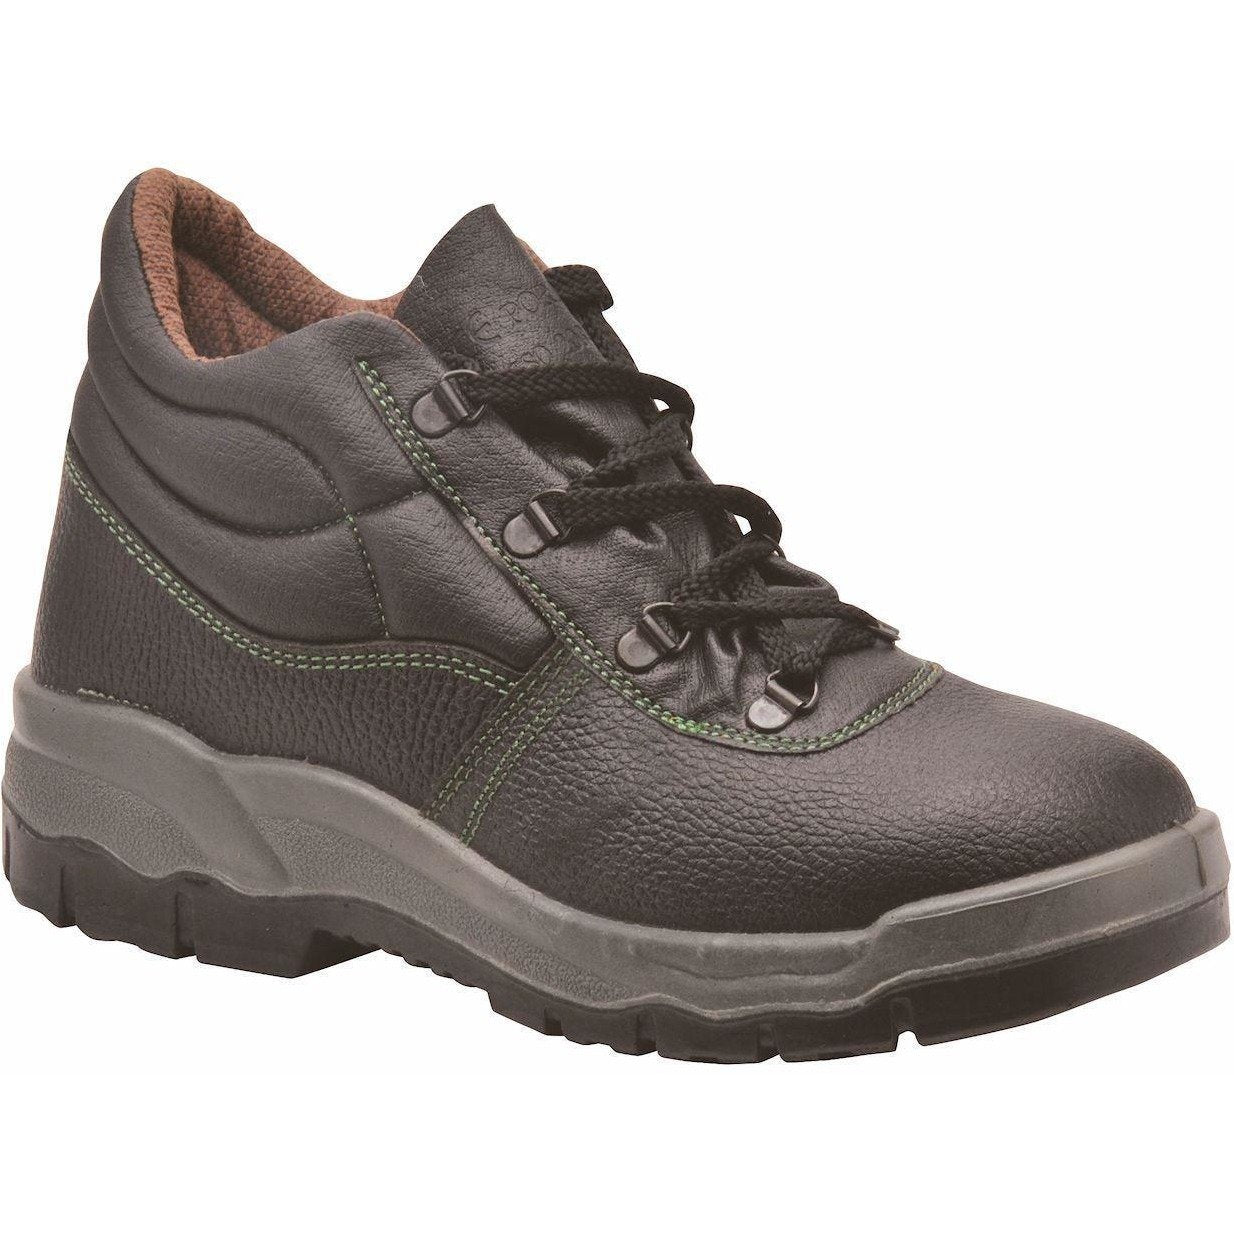 Portwest Steelite Safety Boot S1 FW21 - reid outdoors